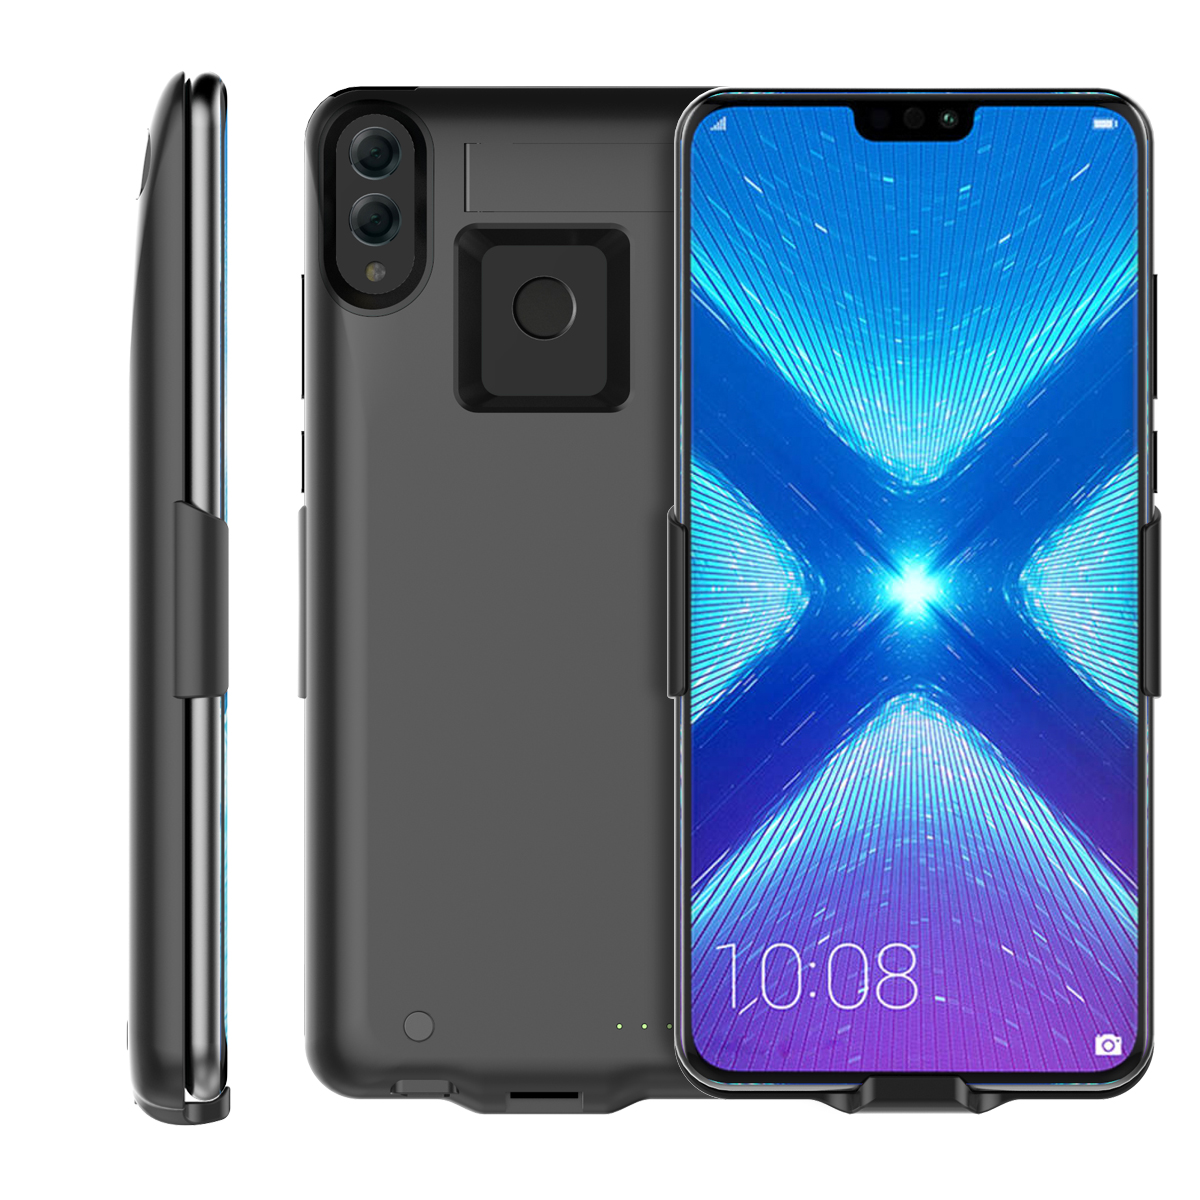 For Huawei Honor 8X 6500mAh Battery Charger Case Extended Battery Backup Power bank with Kickstand for Honor 8X phone Cover For Huawei Honor 8X 6500mAh Battery Charger Case Extended Battery Backup Power bank with Kickstand for Honor 8X phone Cover